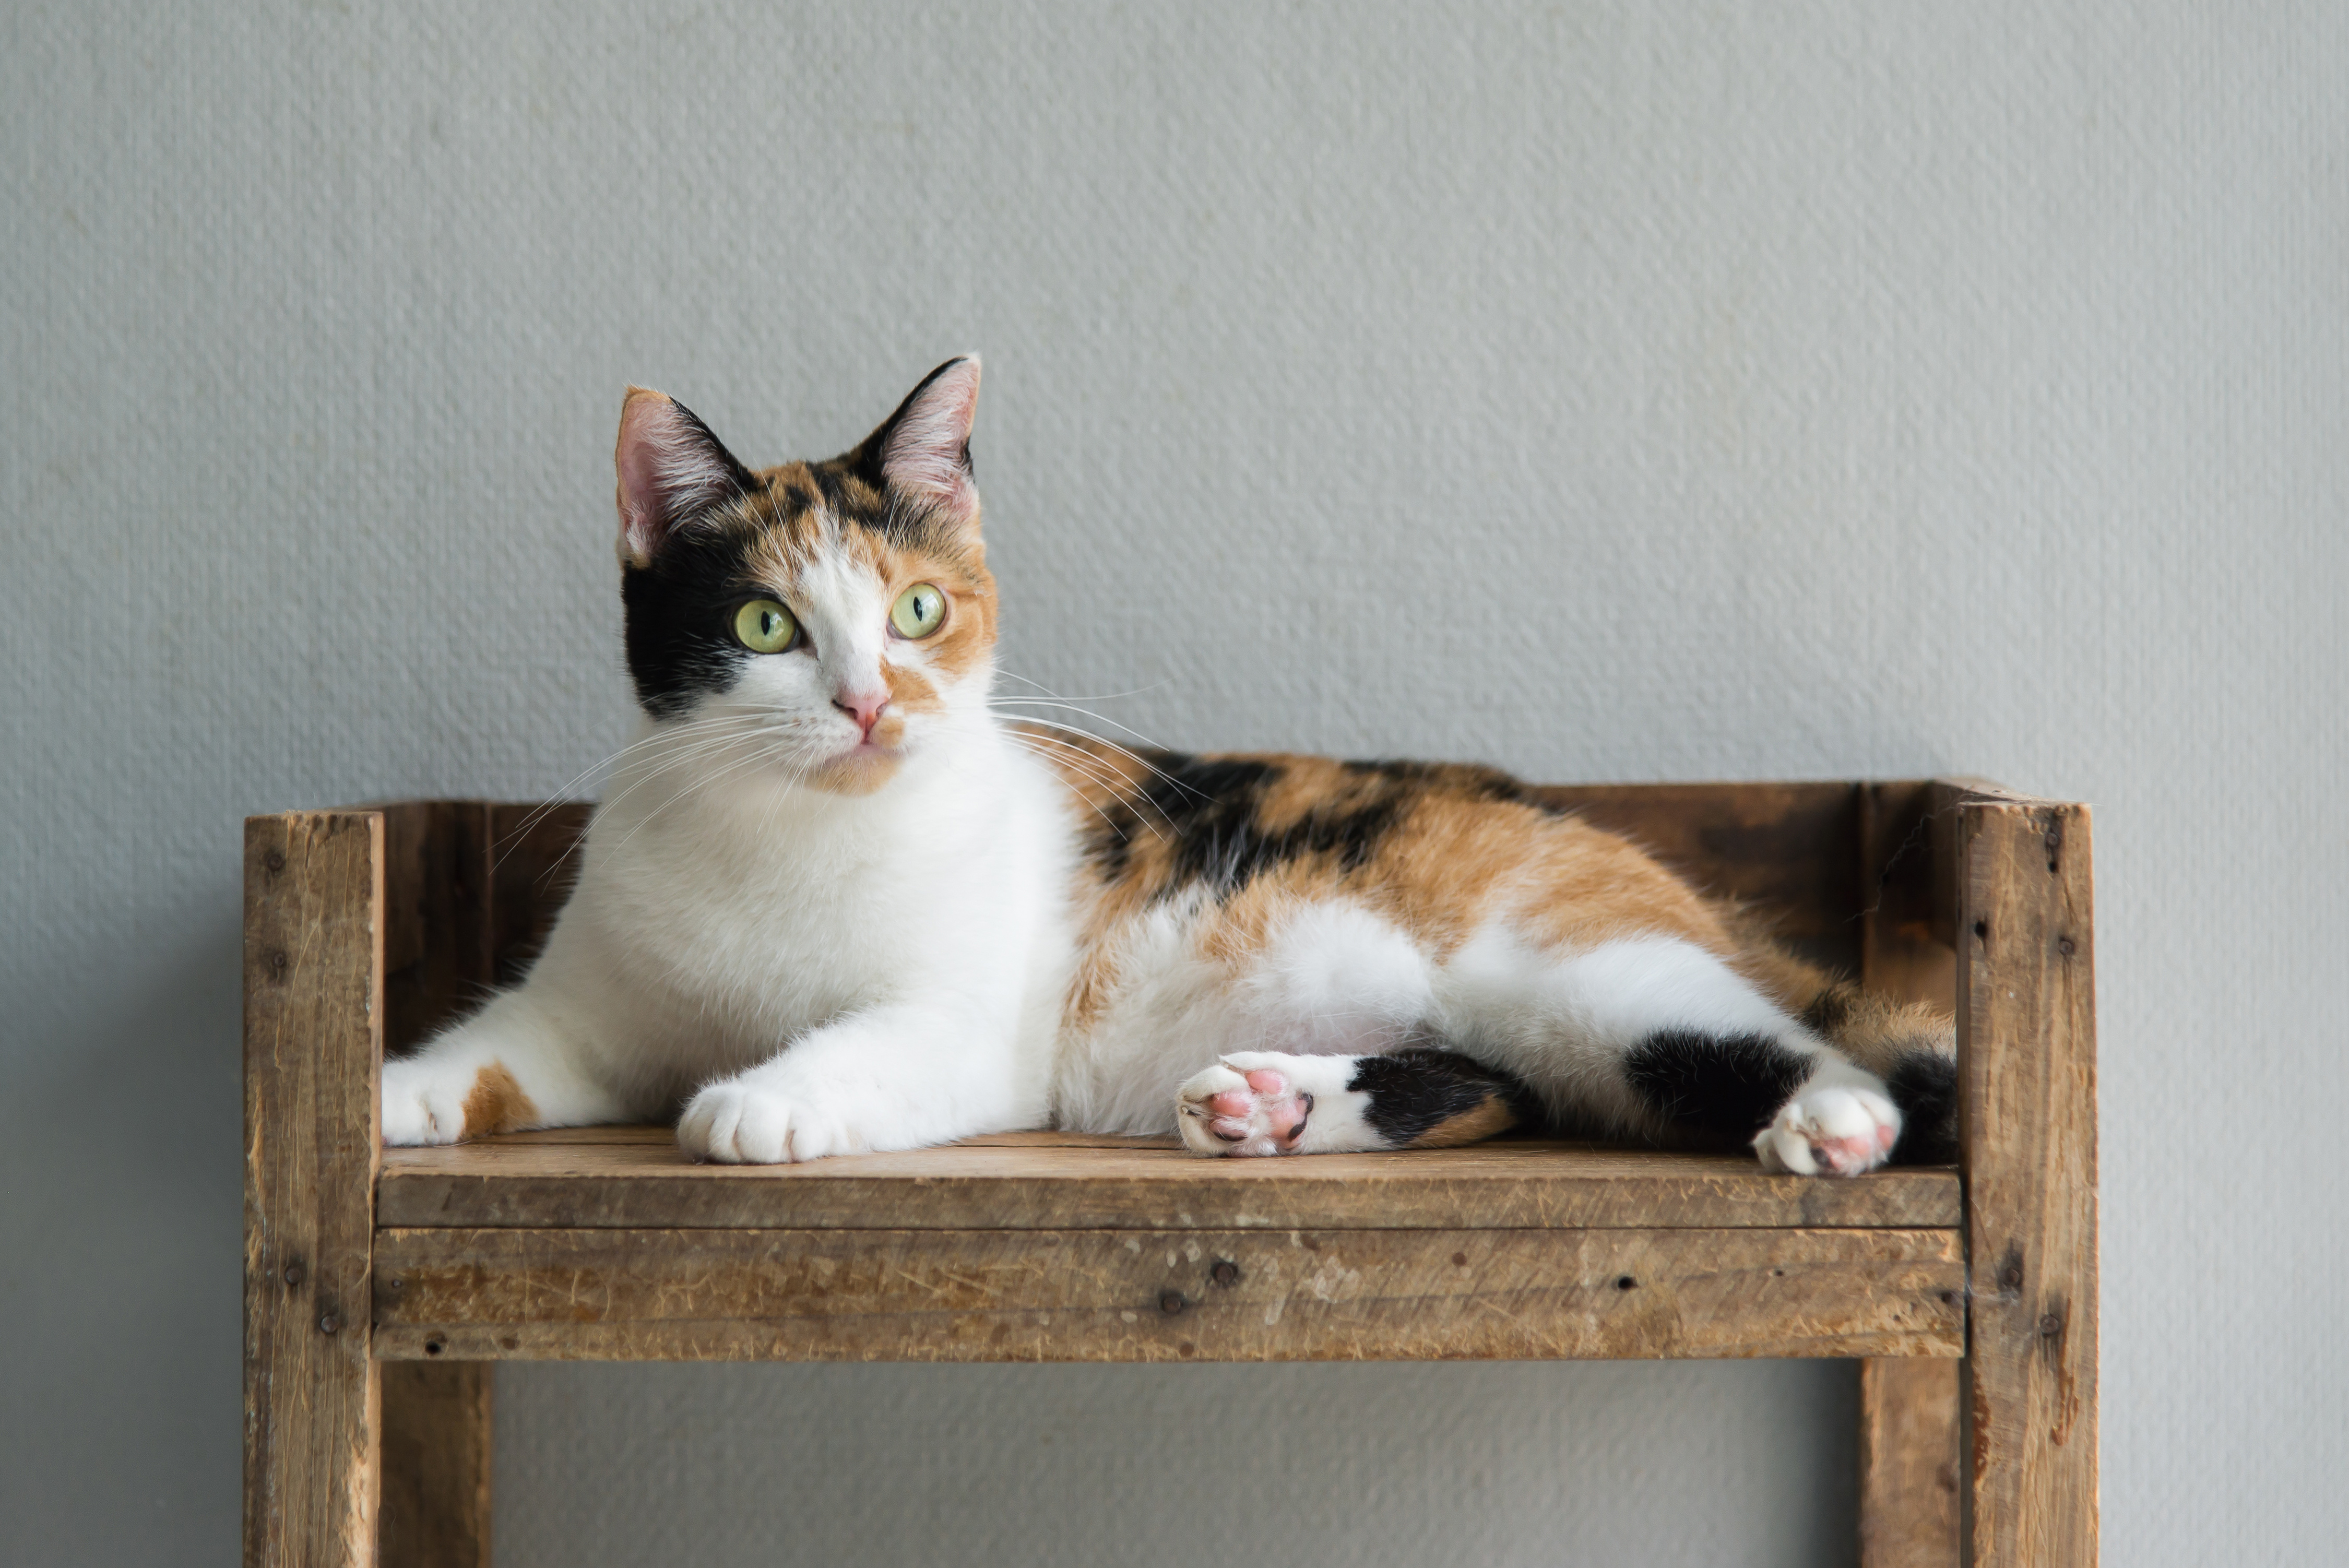 Calico Cats: Why Are They Always Female?